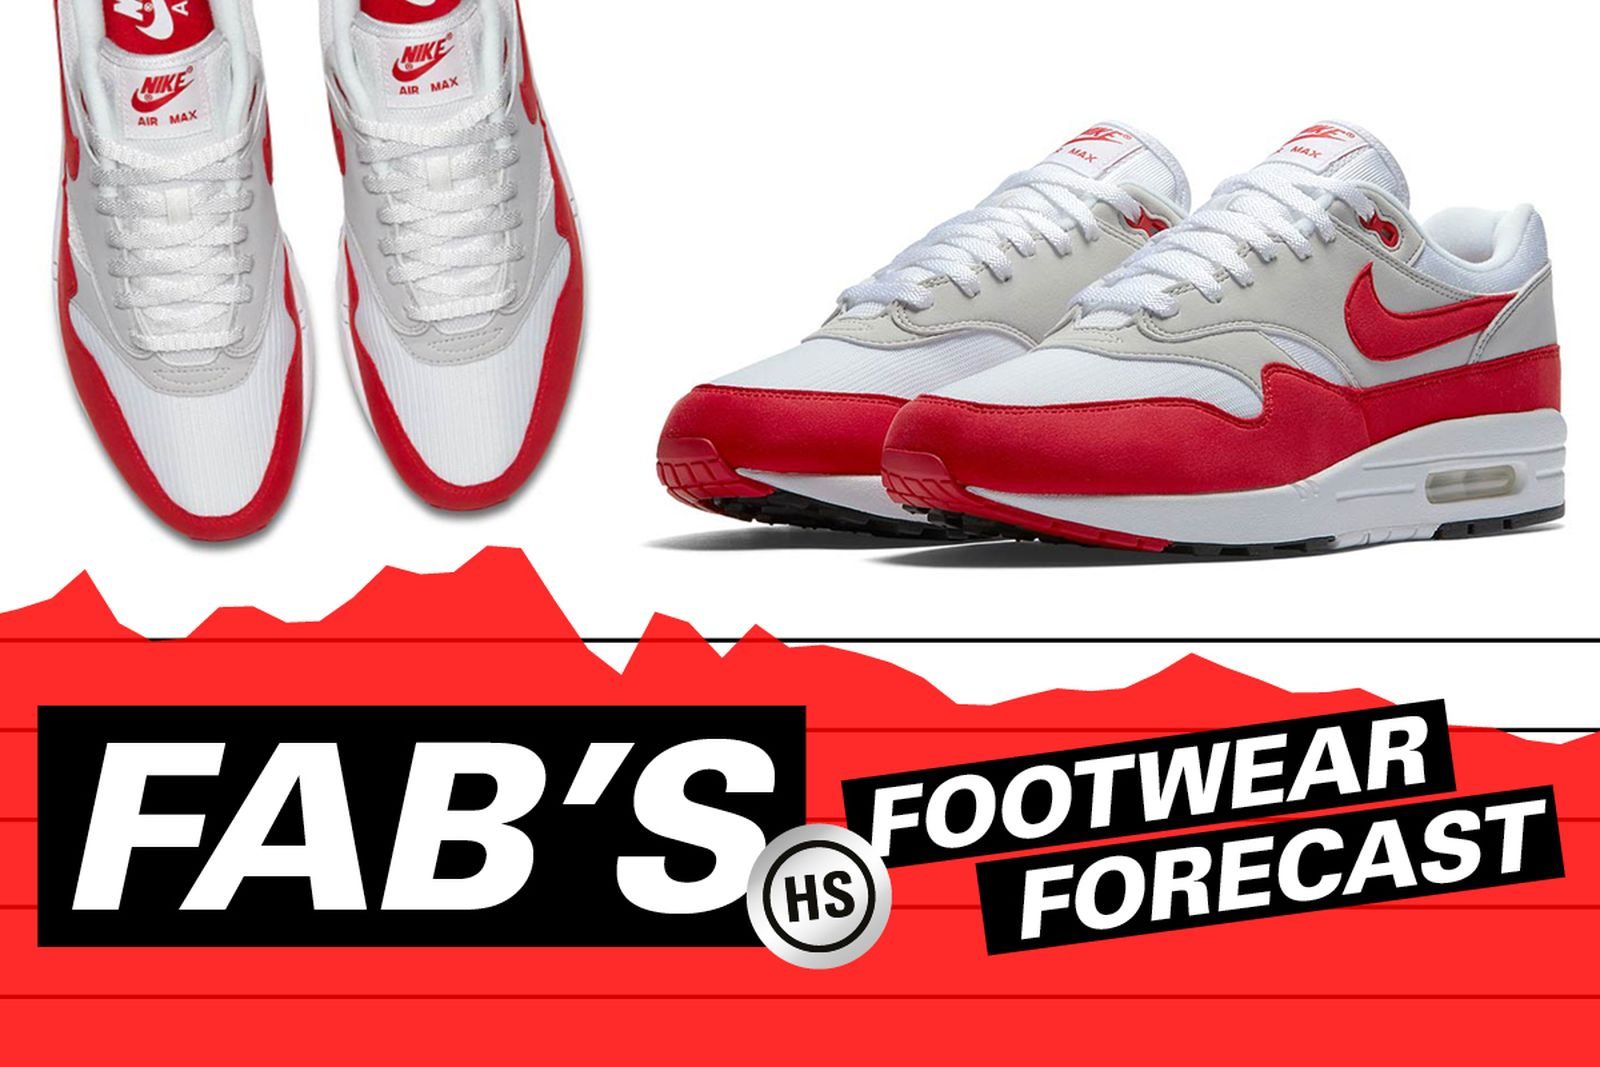 210924_ED_TENT_Fabs_Footwear_Forecast_02